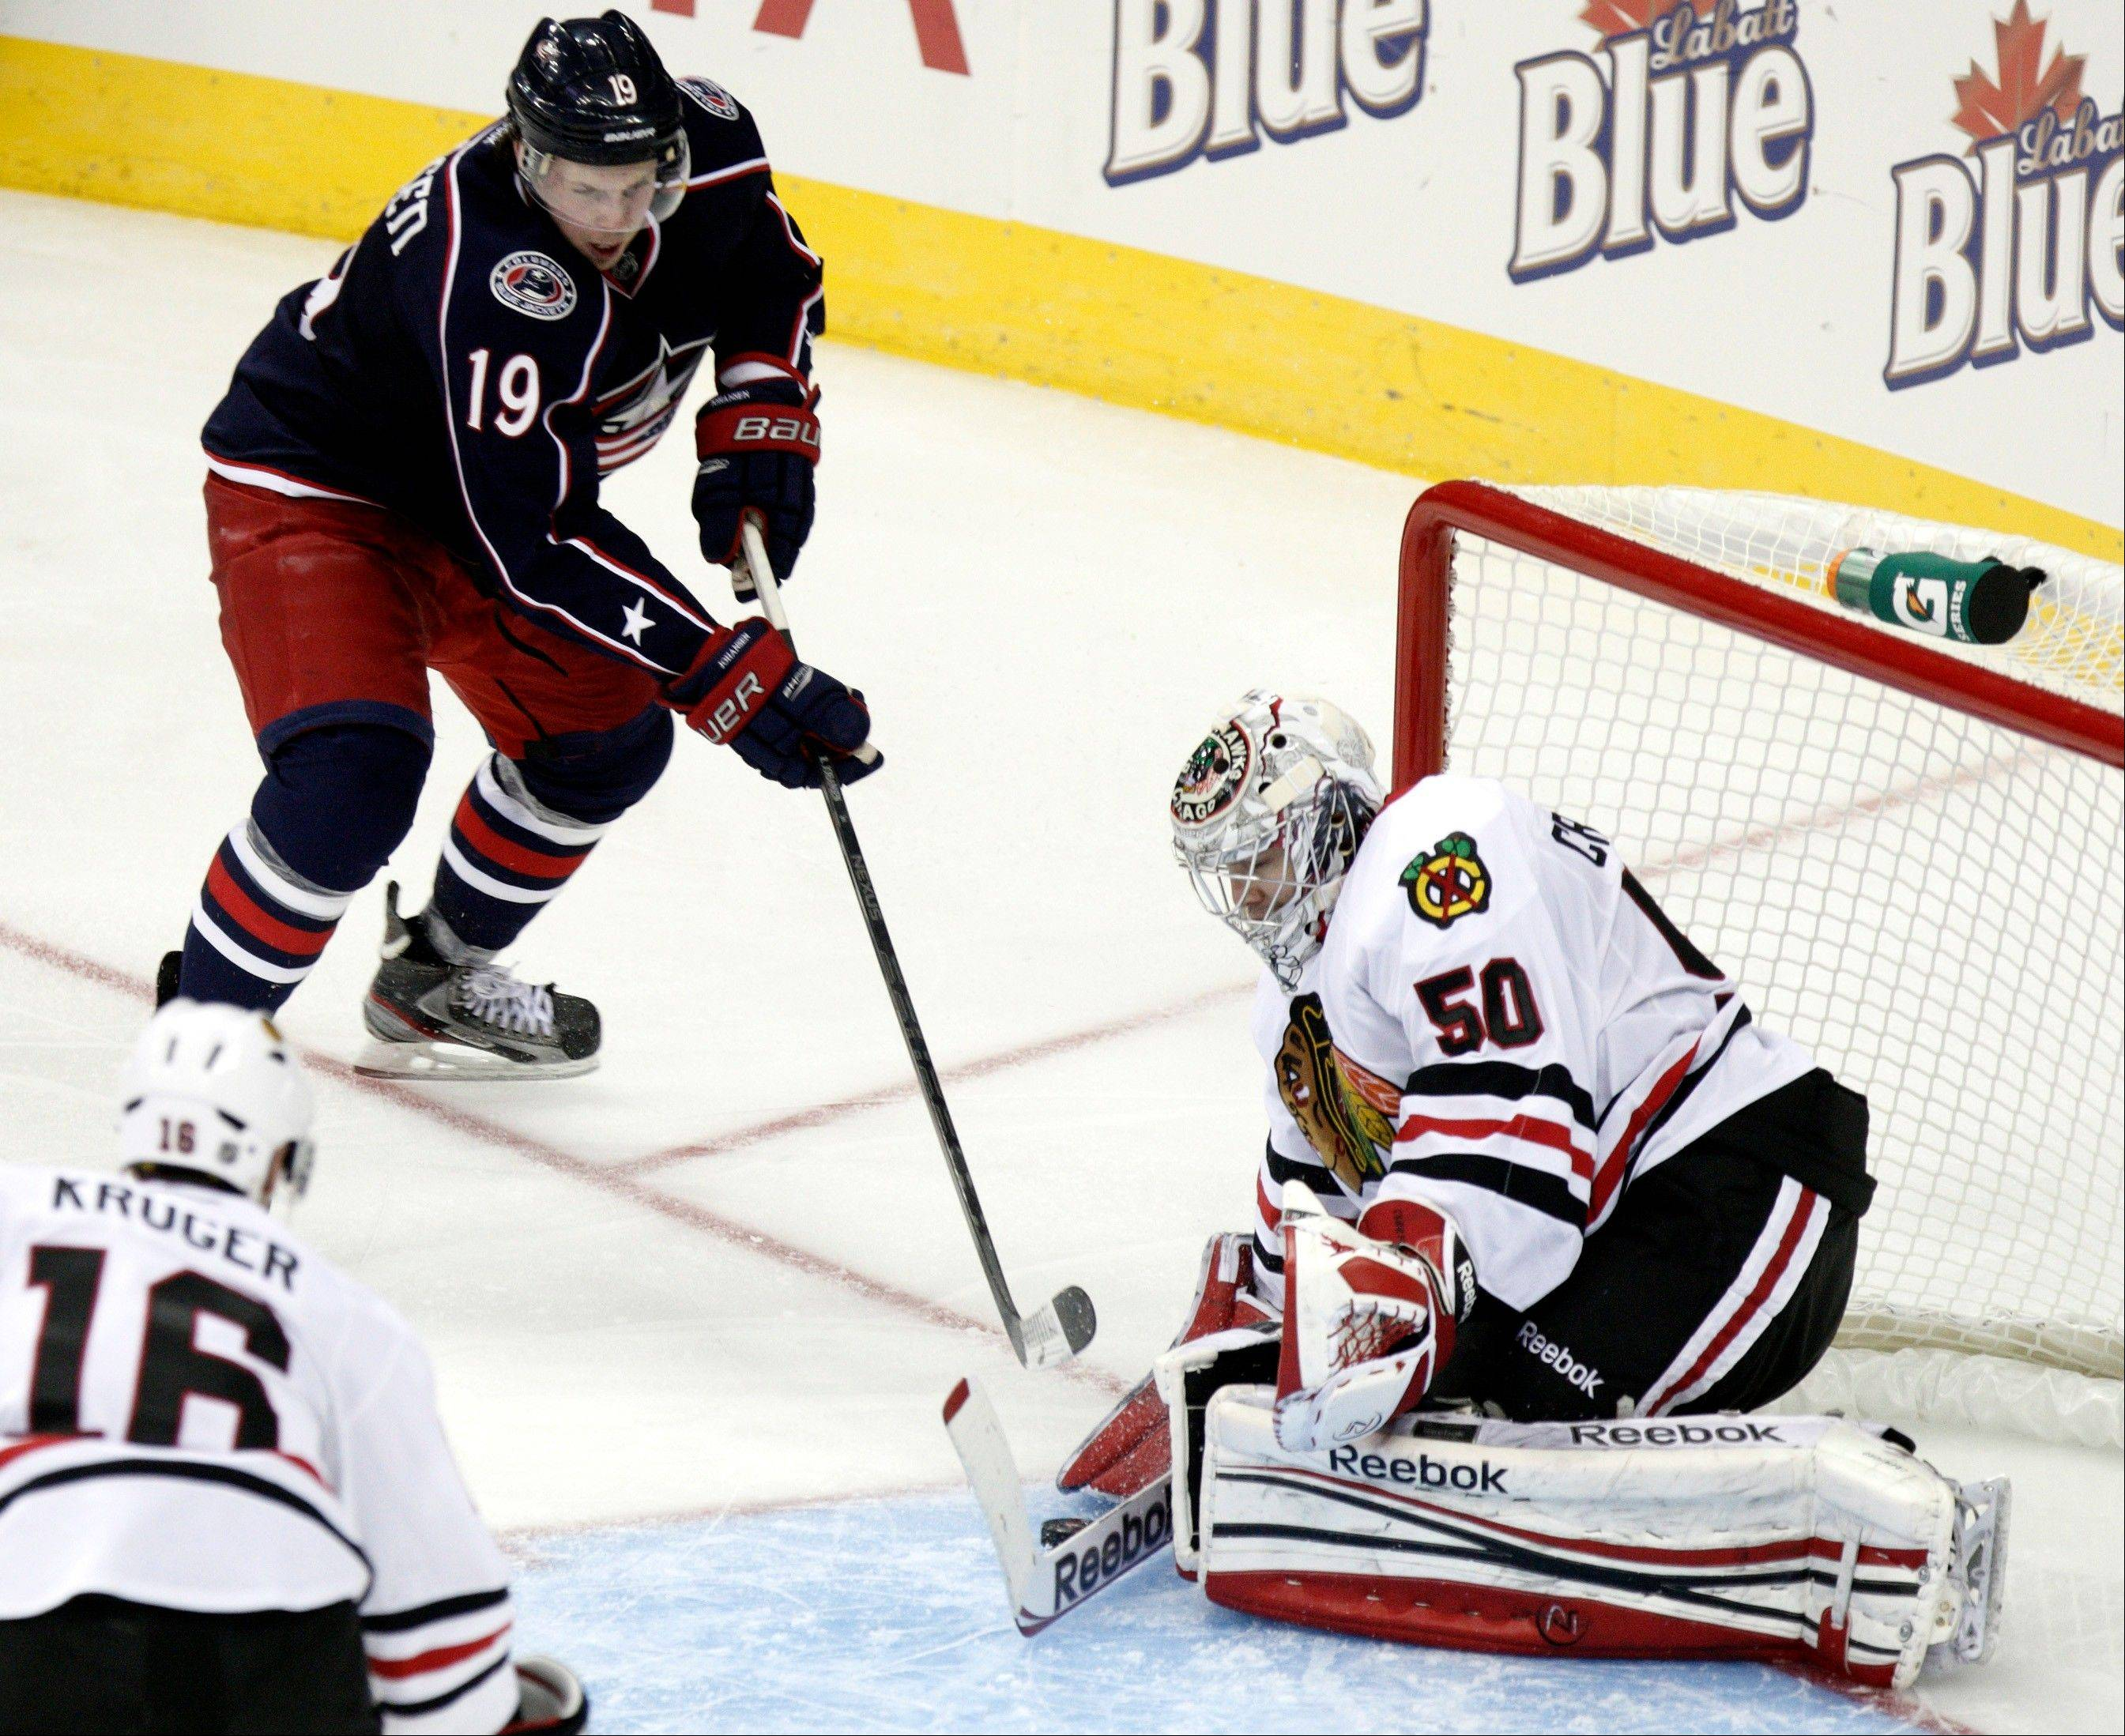 Chicago Blackhawks goalie Corey Crawford stops a shot against Columbus Blue Jackets' Ryan Johansen in the third period of an NHL hockey game in Columbus, Ohio, Saturday, Jan. 26, 2013. Chicago won 3-2.